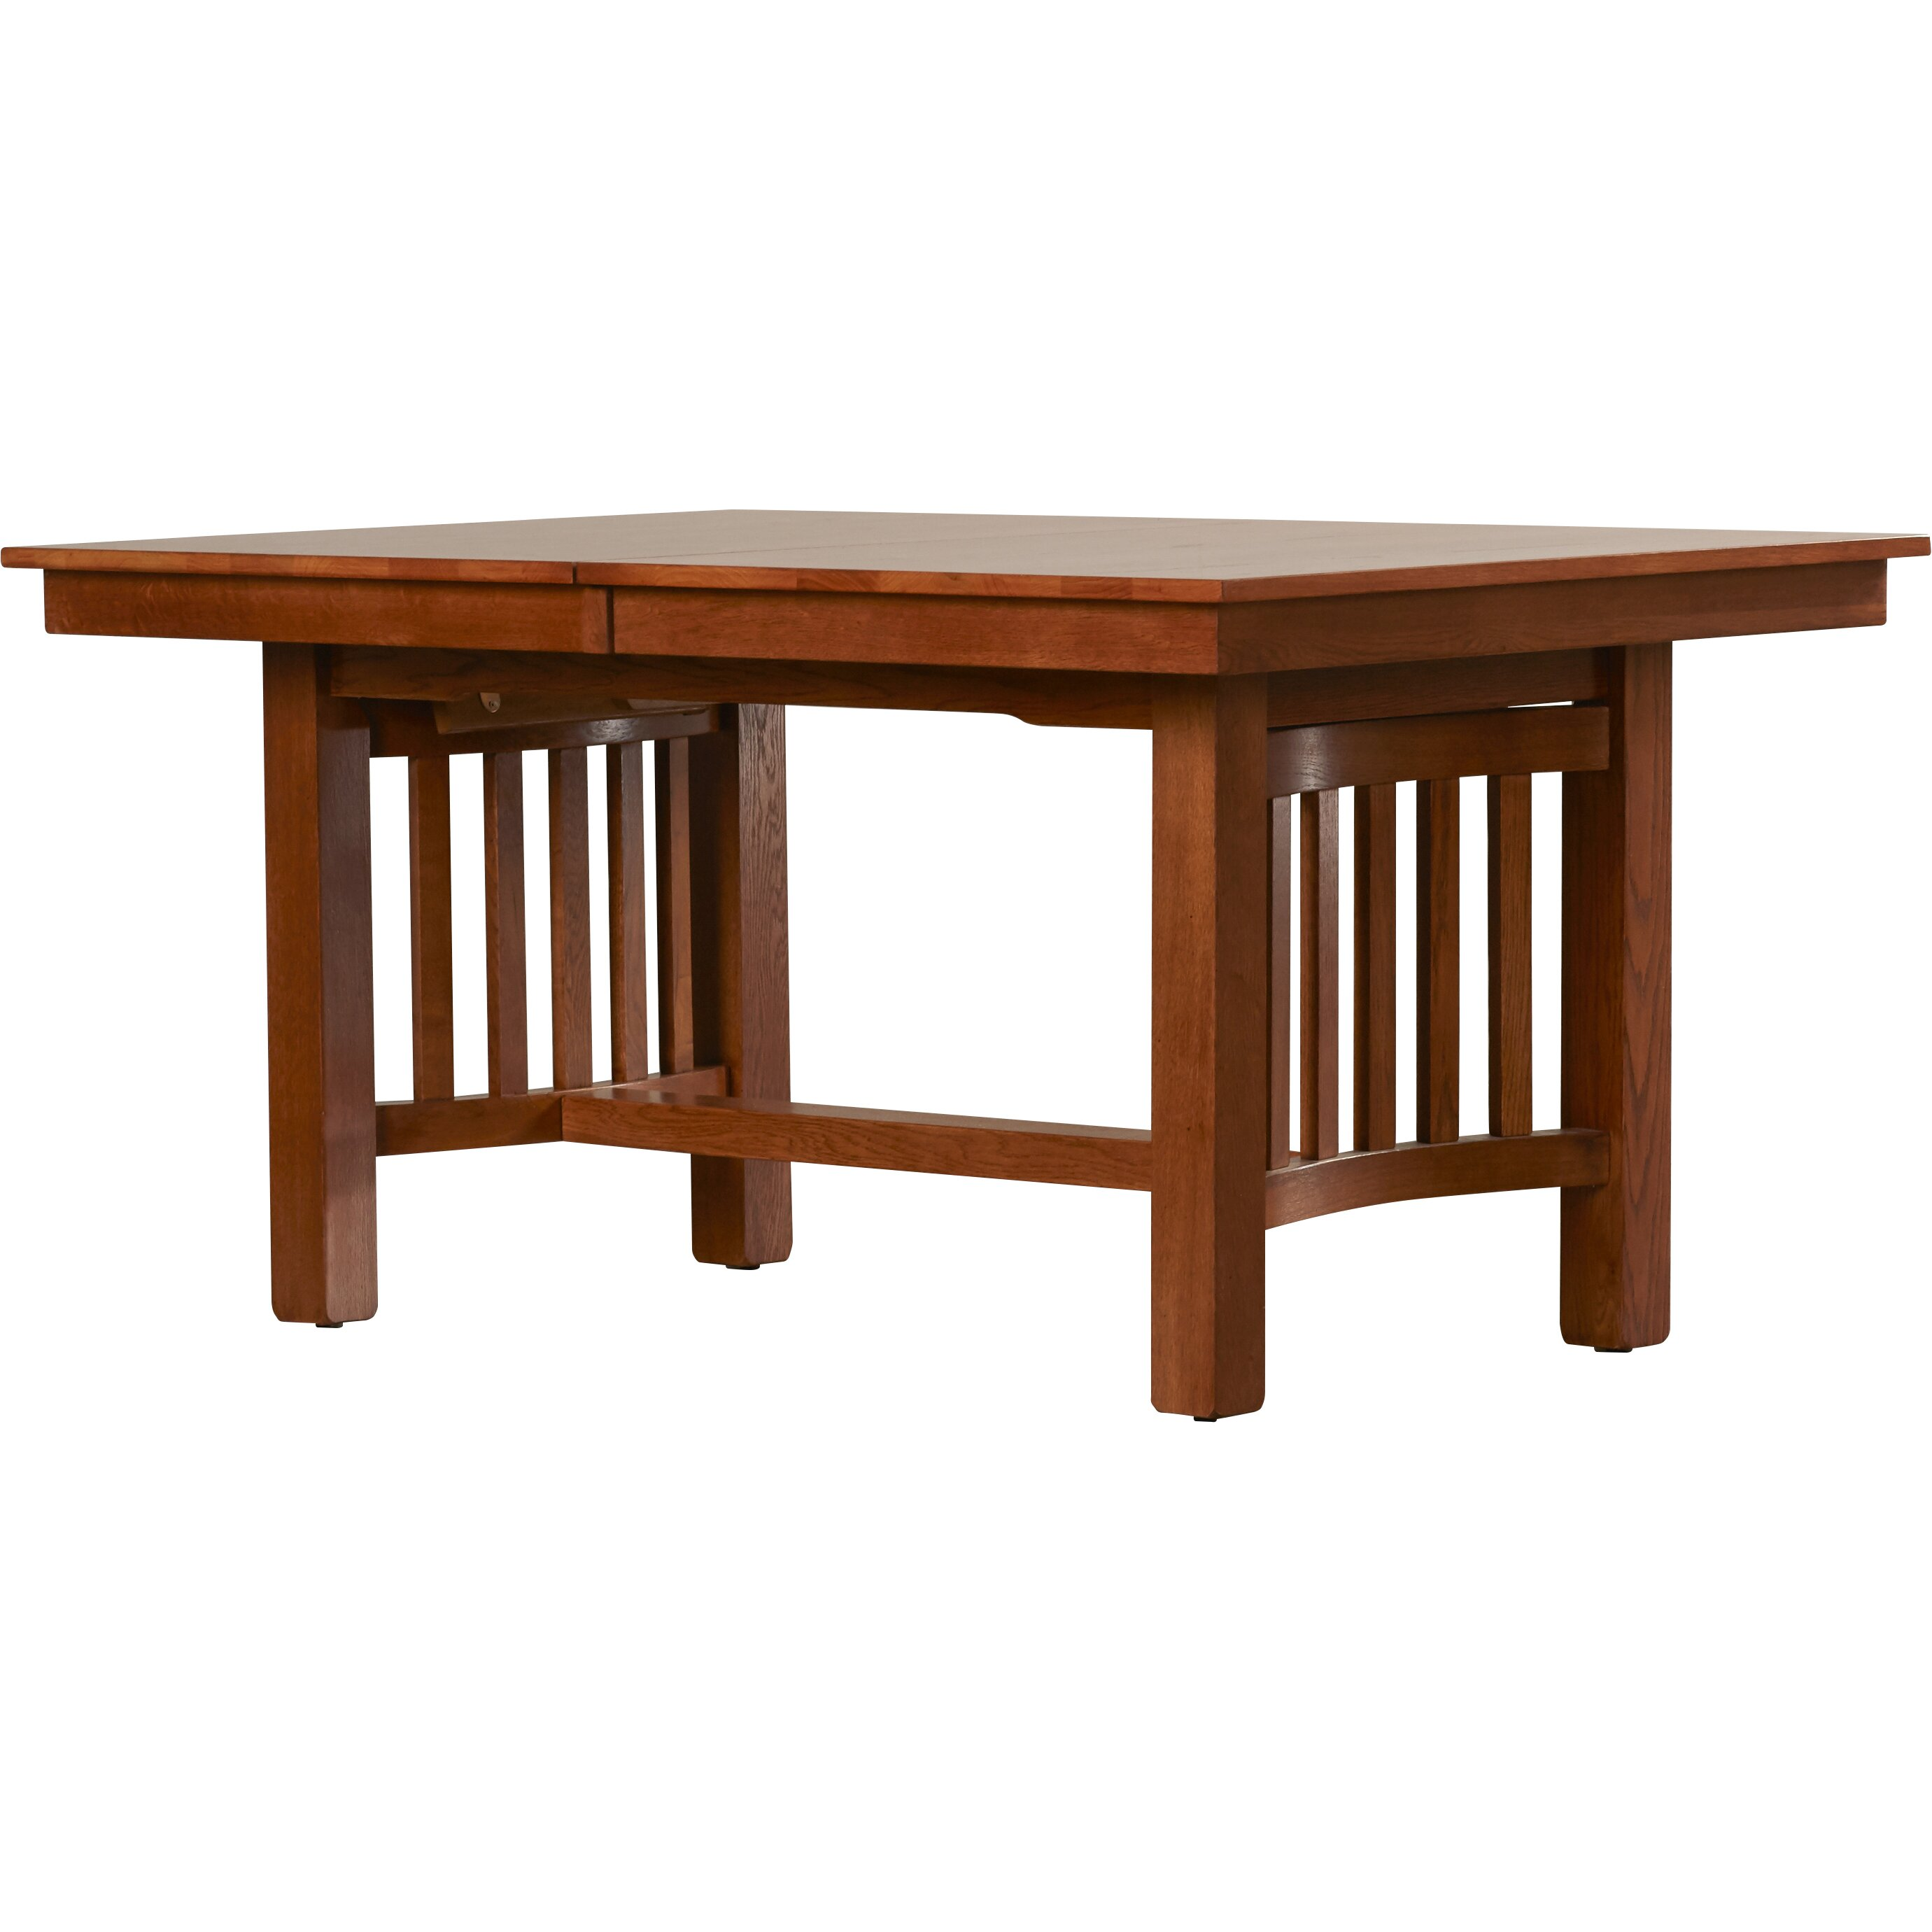 Loon Peak Extendable Dining Table amp Reviews Wayfair :  from www.wayfair.com size 2761 x 2761 jpeg 454kB